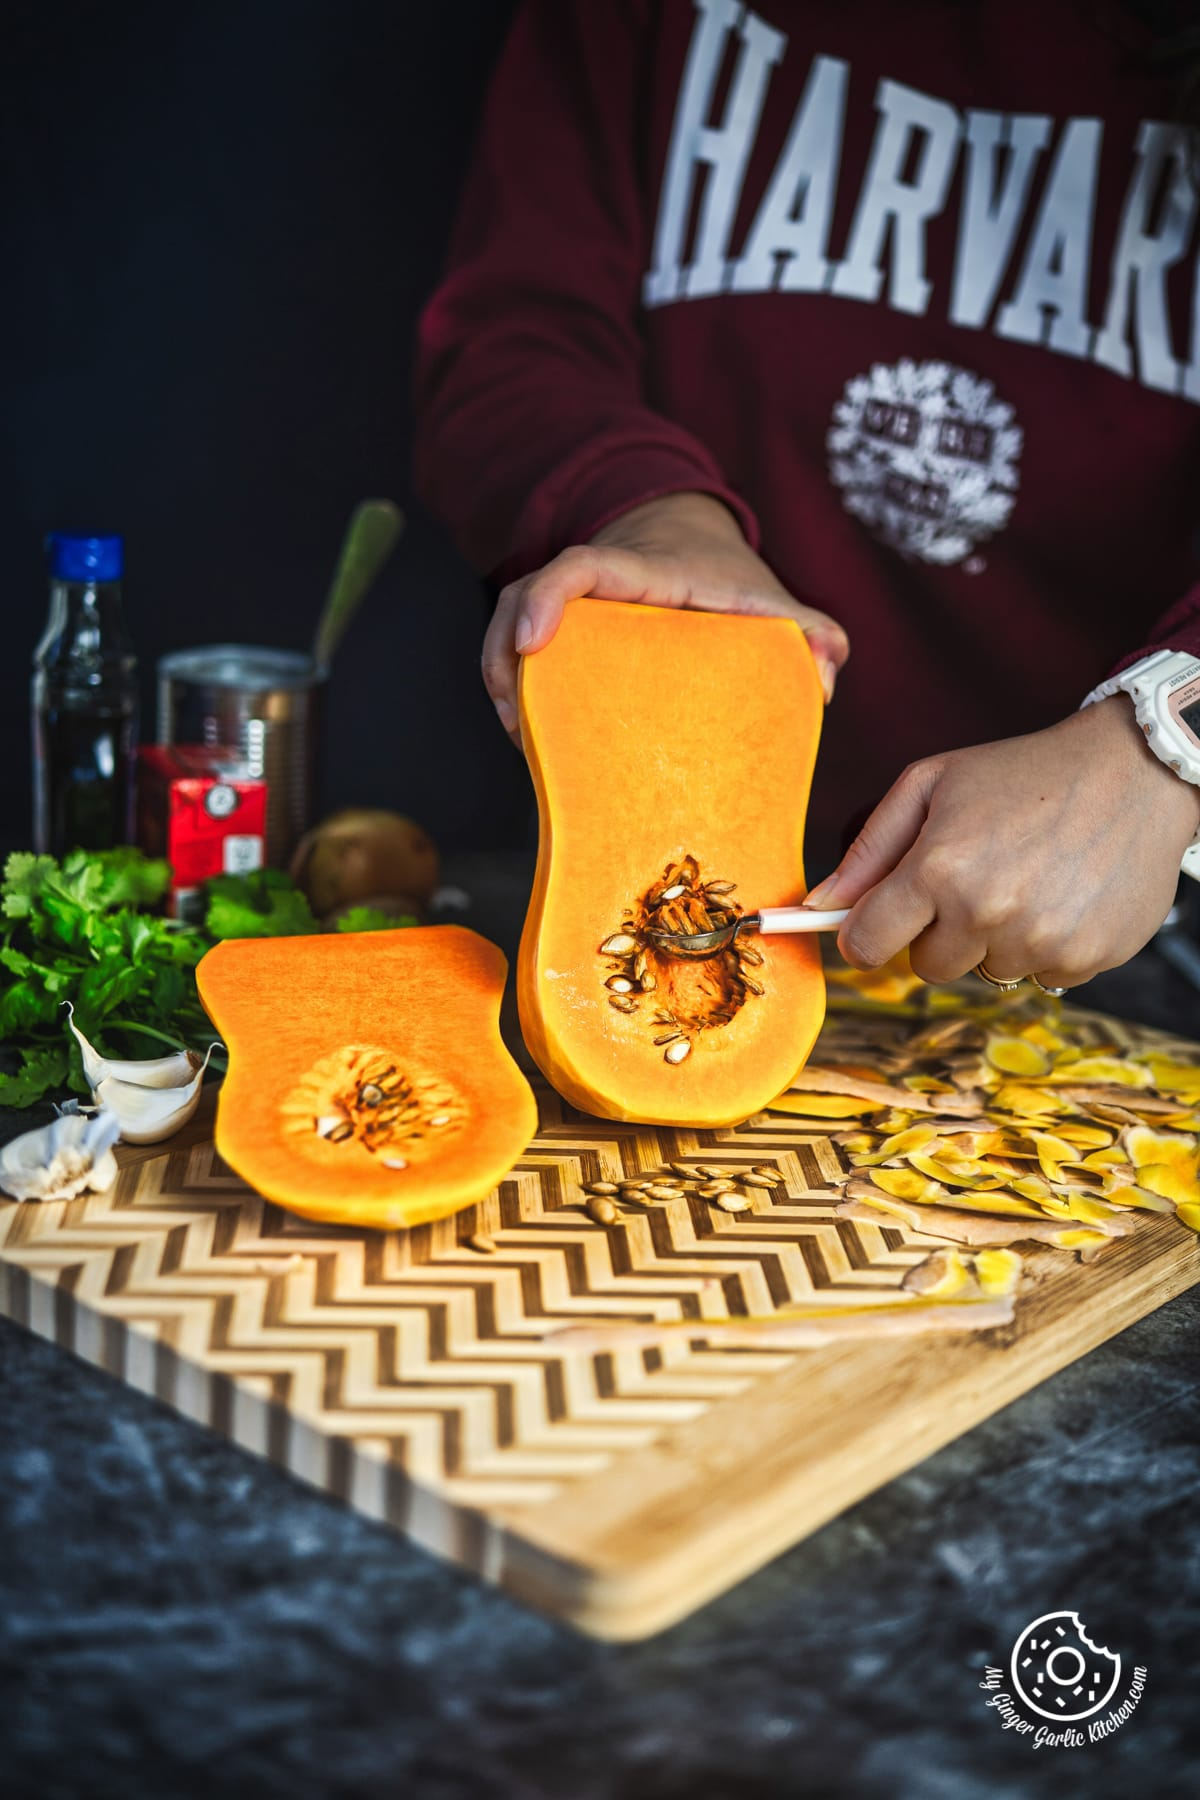 Person removing seeds from butternut squash